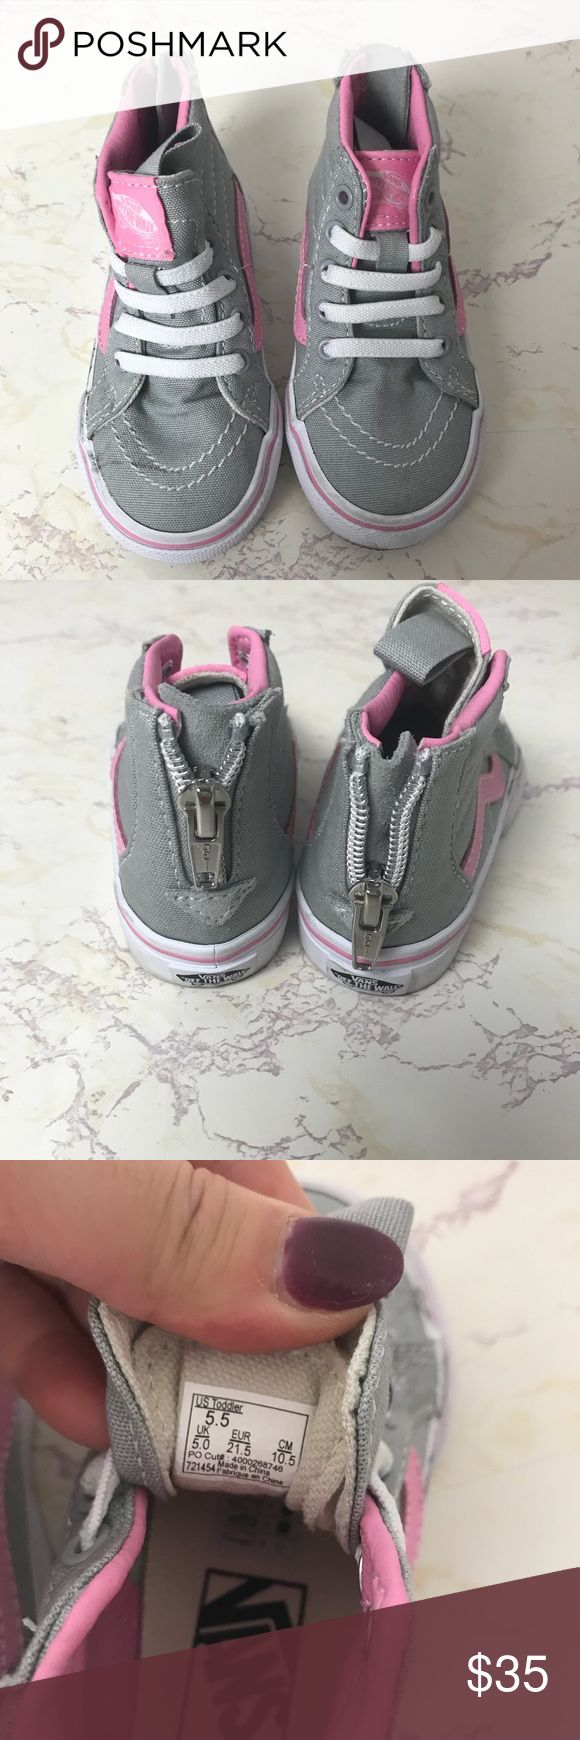 Vans of the walls high top toddler shoes size 5.5 Good condition Vans Shoes Sneakers